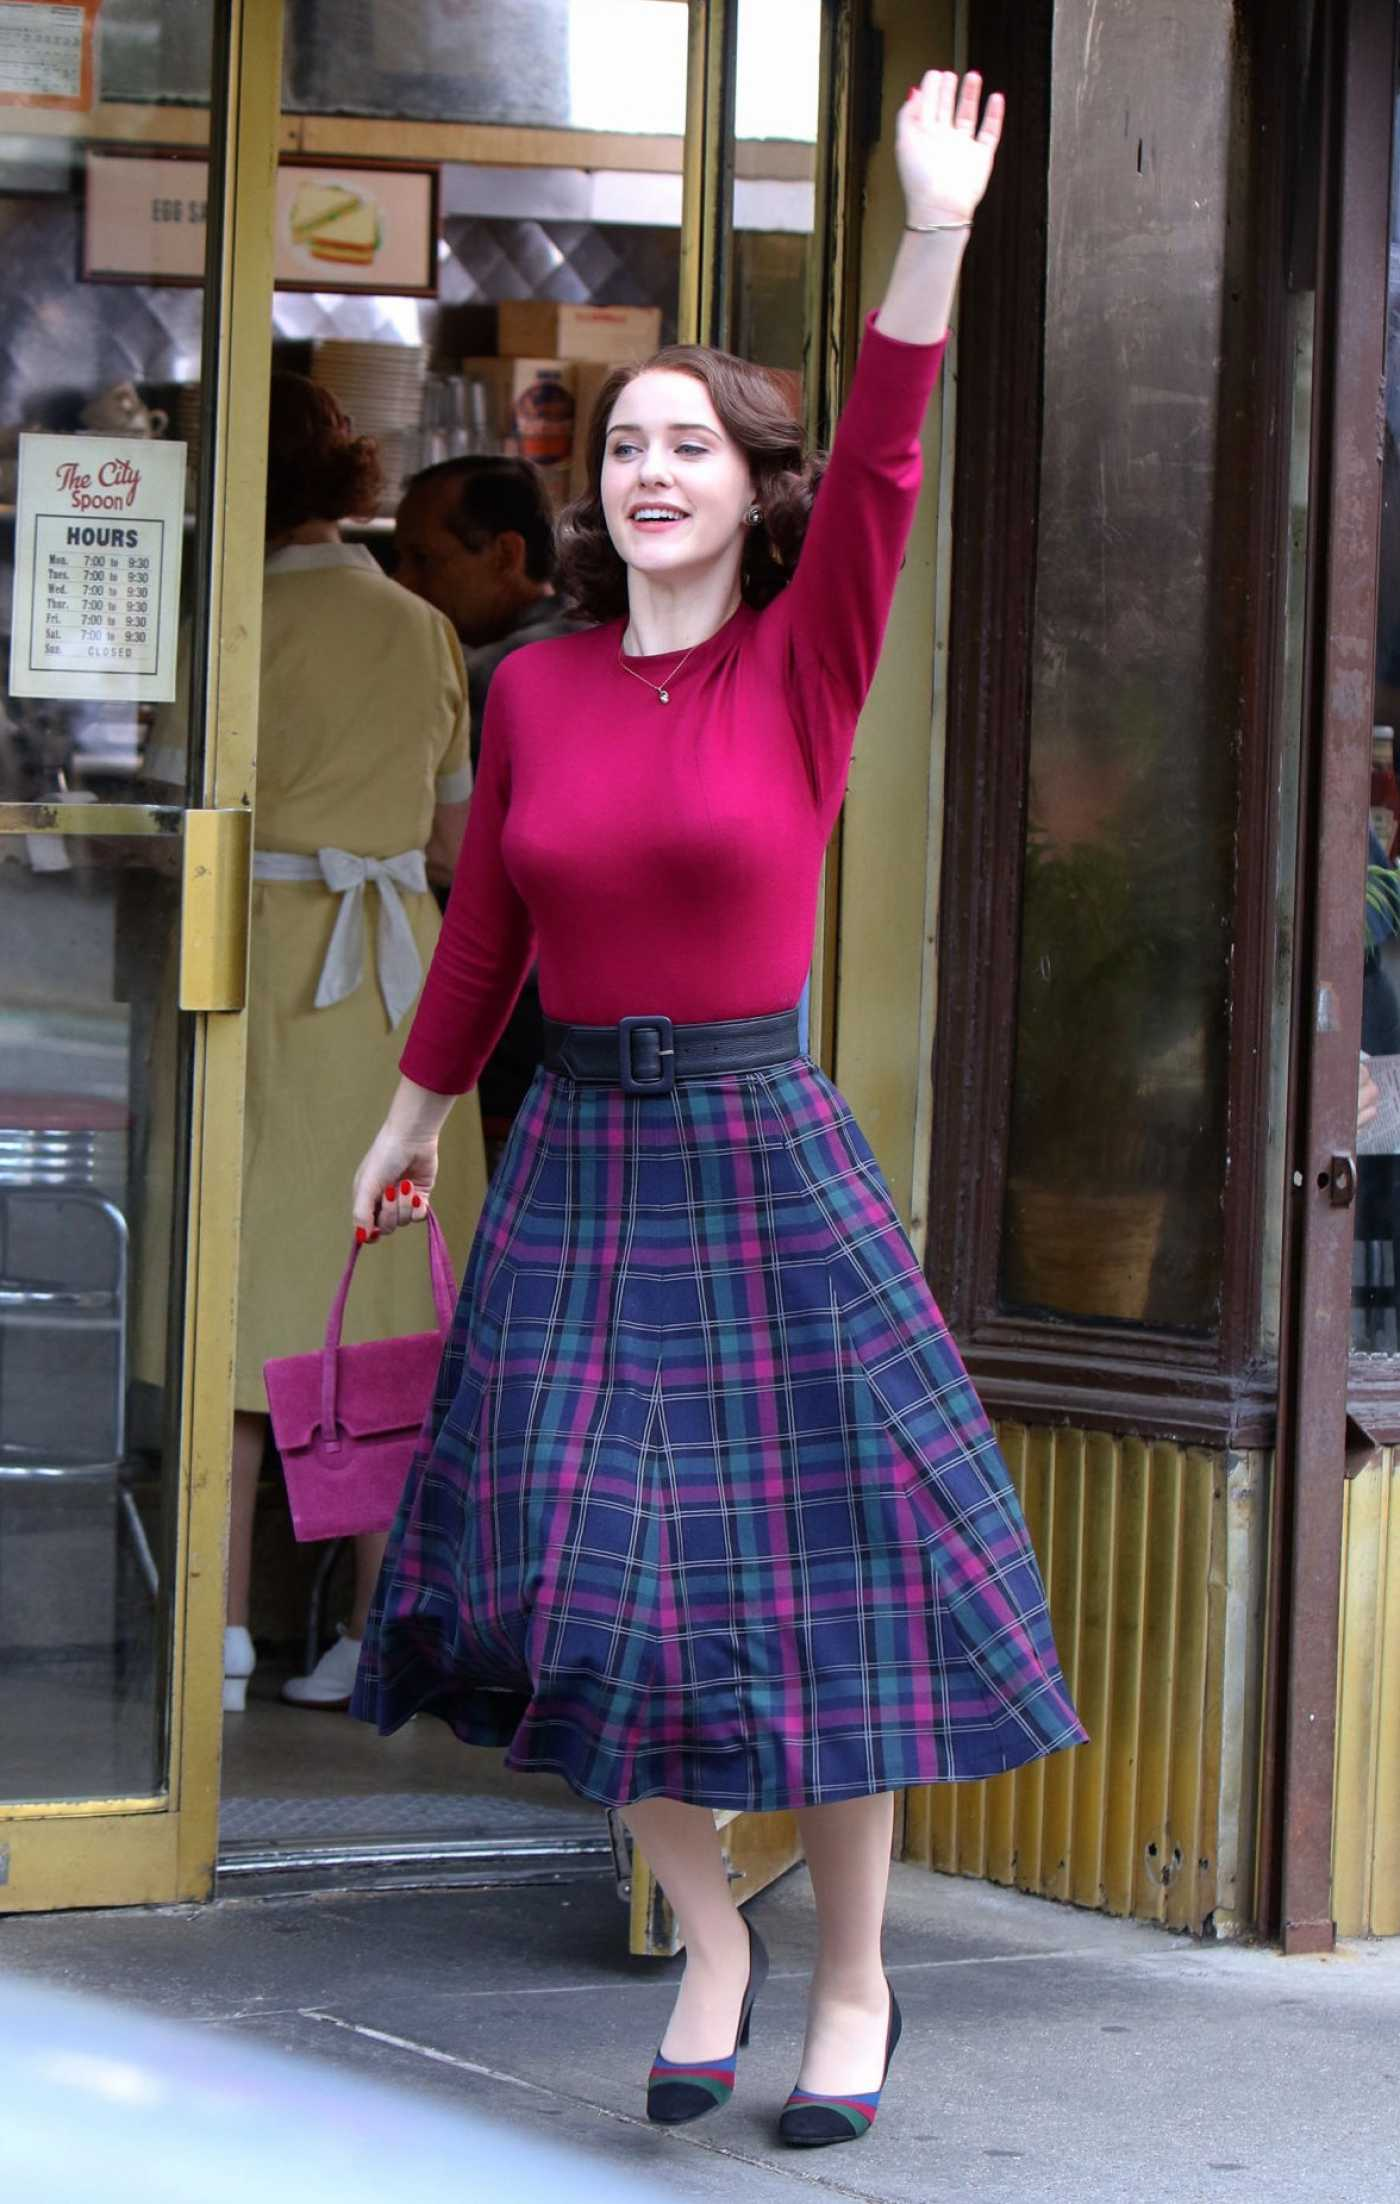 Rachel Brosnahan in a Plaid Skirt on the Set of The Marvelous Mrs. Maisel in New York City 08/27/2019